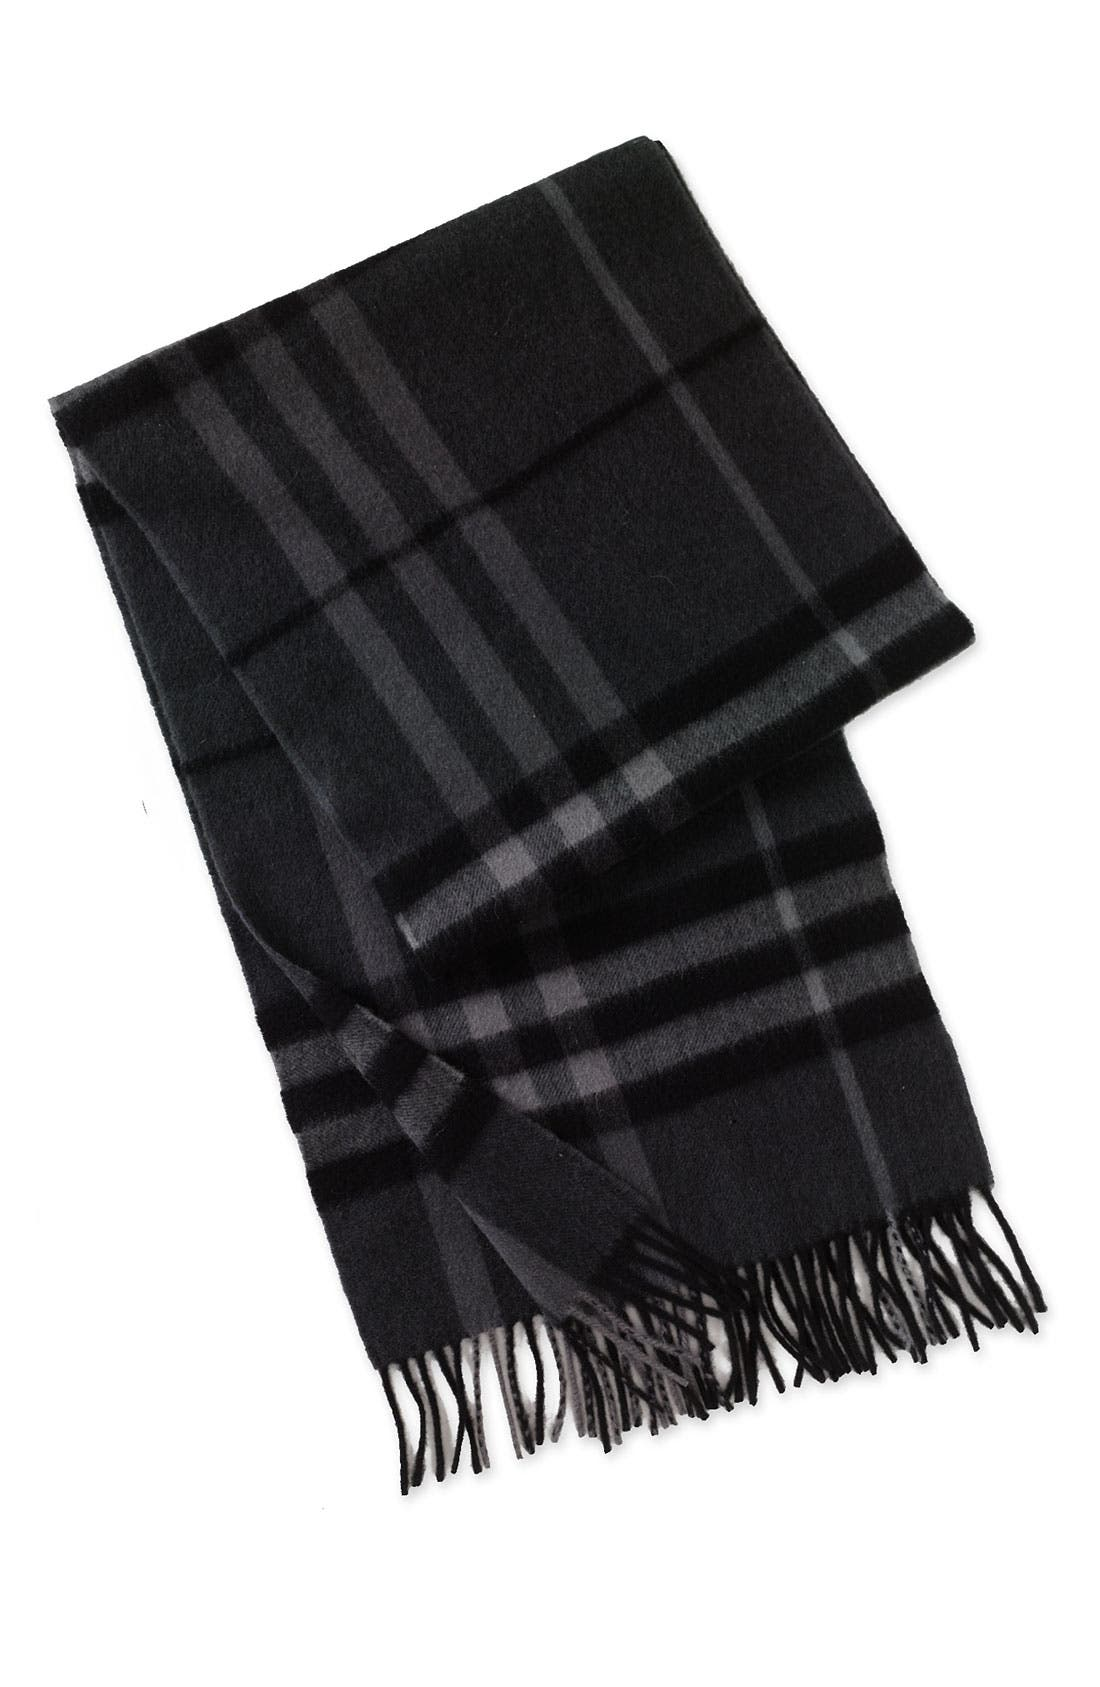 BURBERRY, Heritage Check Cashmere Scarf, Main thumbnail 1, color, 012